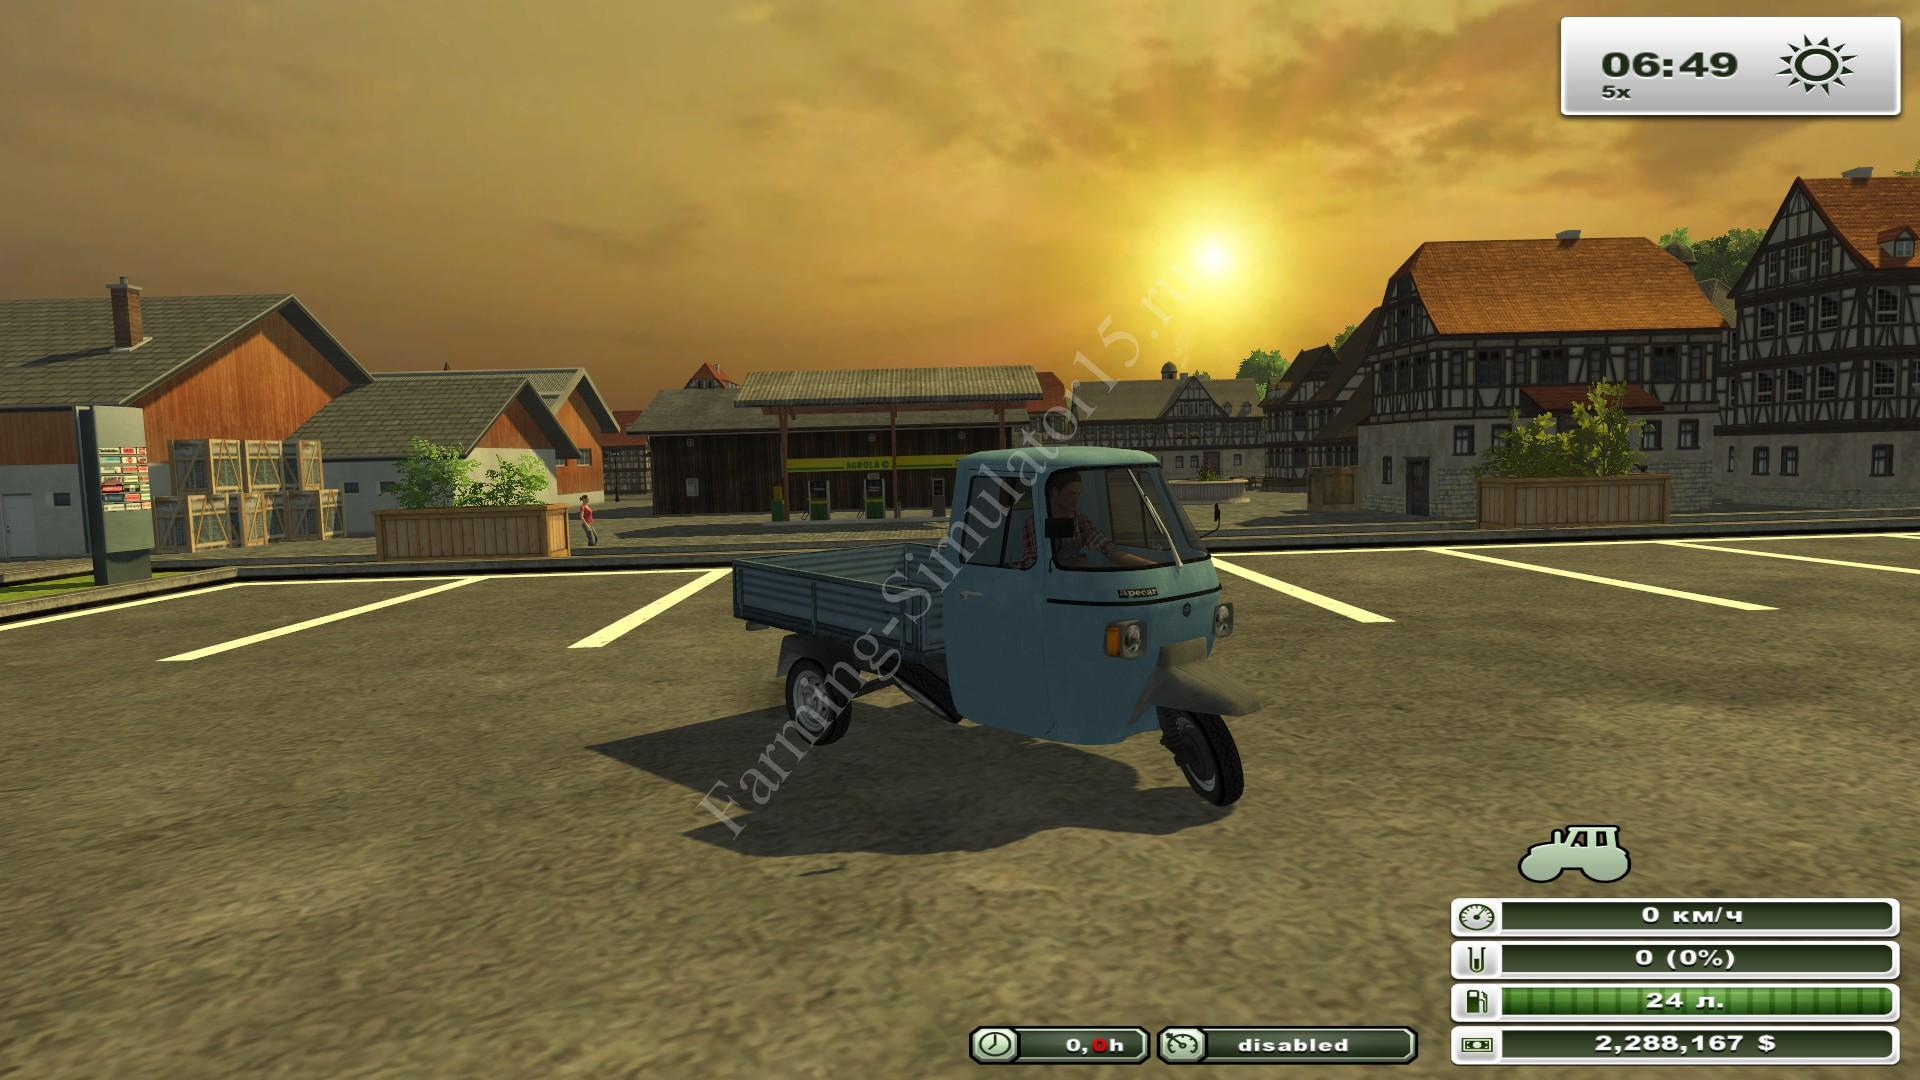 Piaggio Ape P601 v 1.0 - мод легкового авто Farming Simulator 13, Farming Simulator 2013